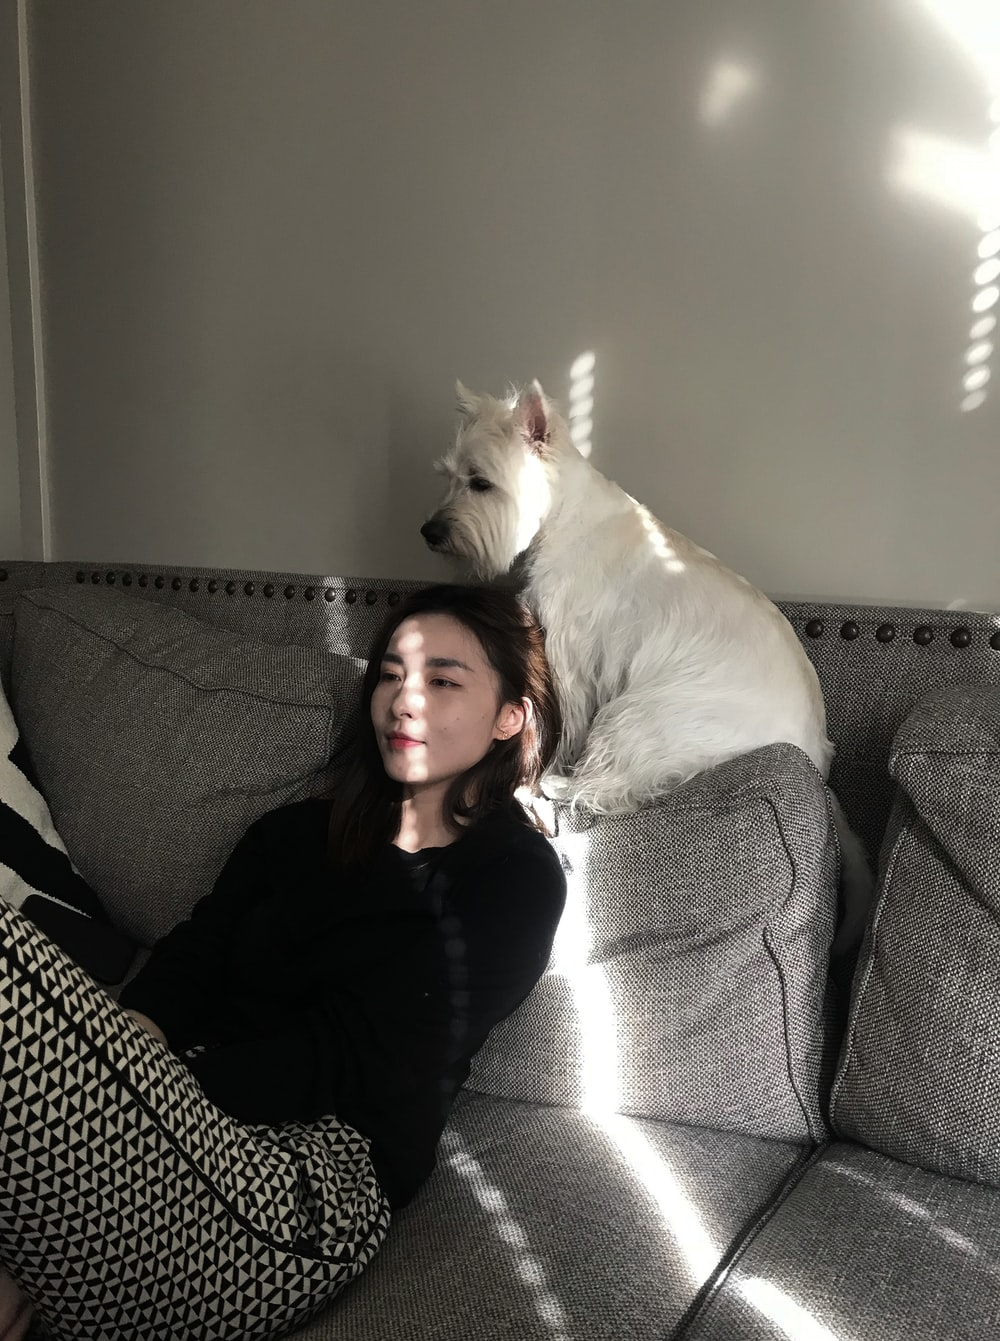 white dog beside woman sitting on couch